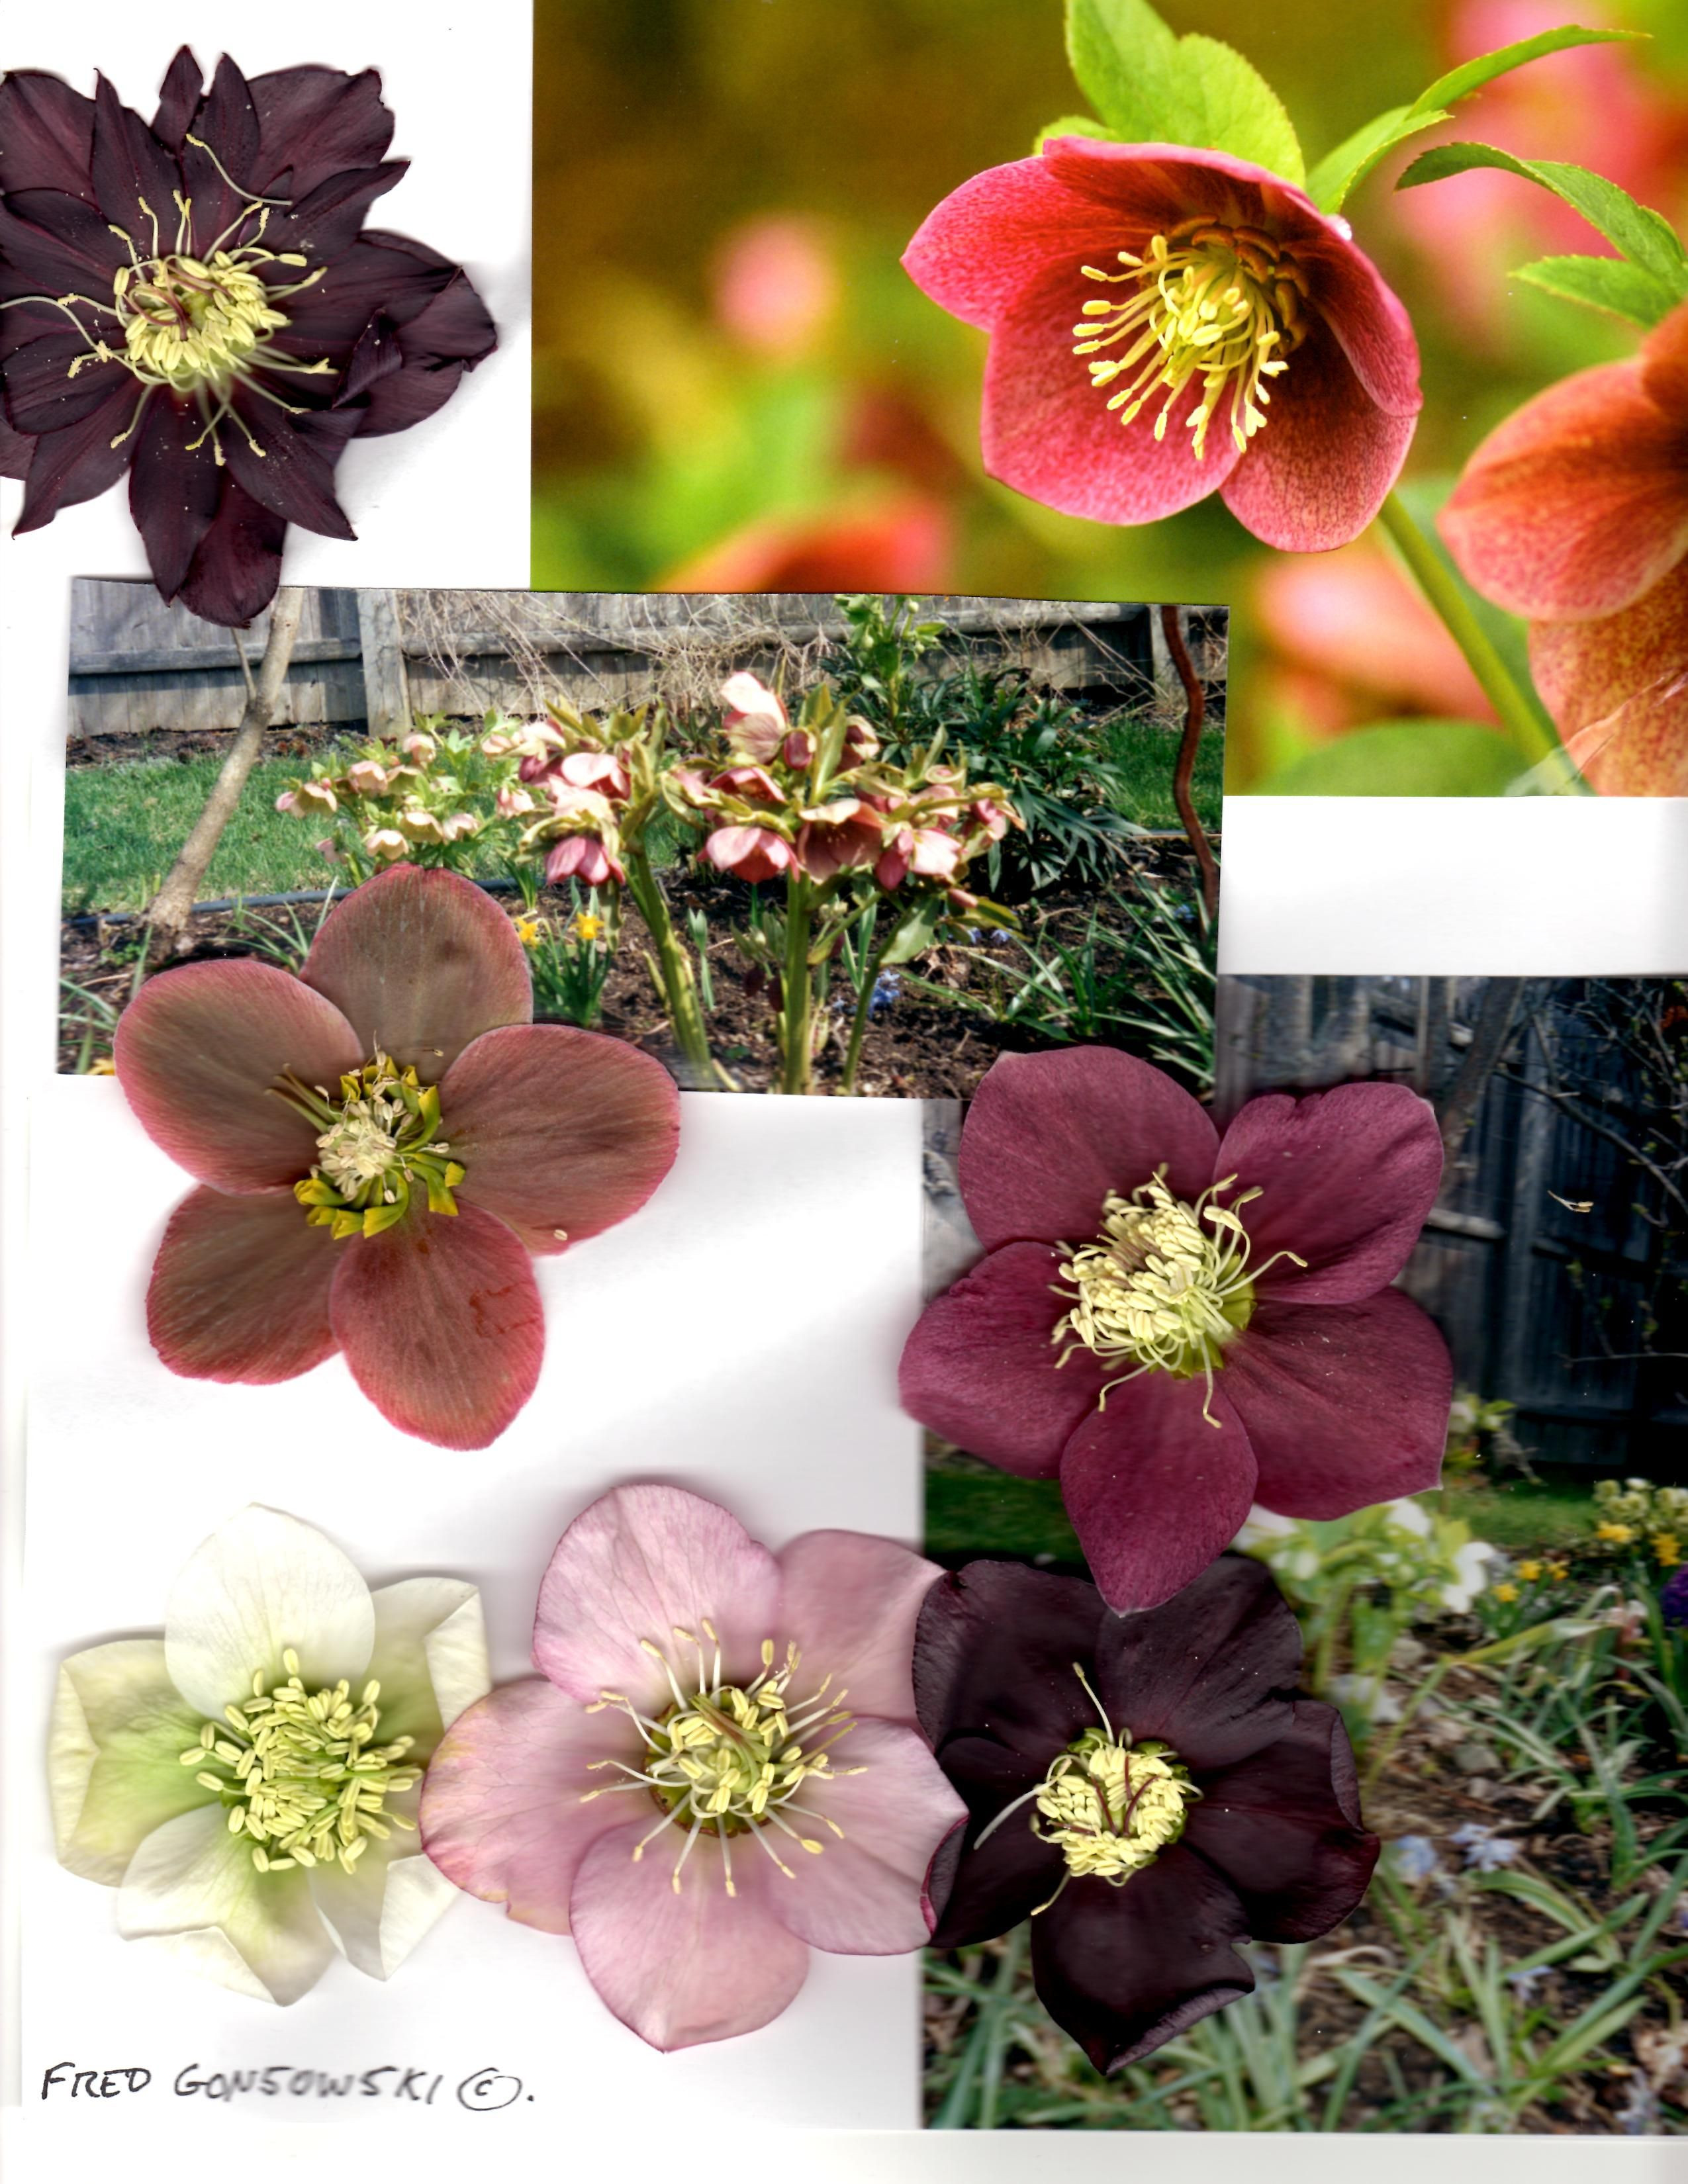 Hellebores or Lenten Roses as sometimes called bloom in Spring & are long bloomers after the